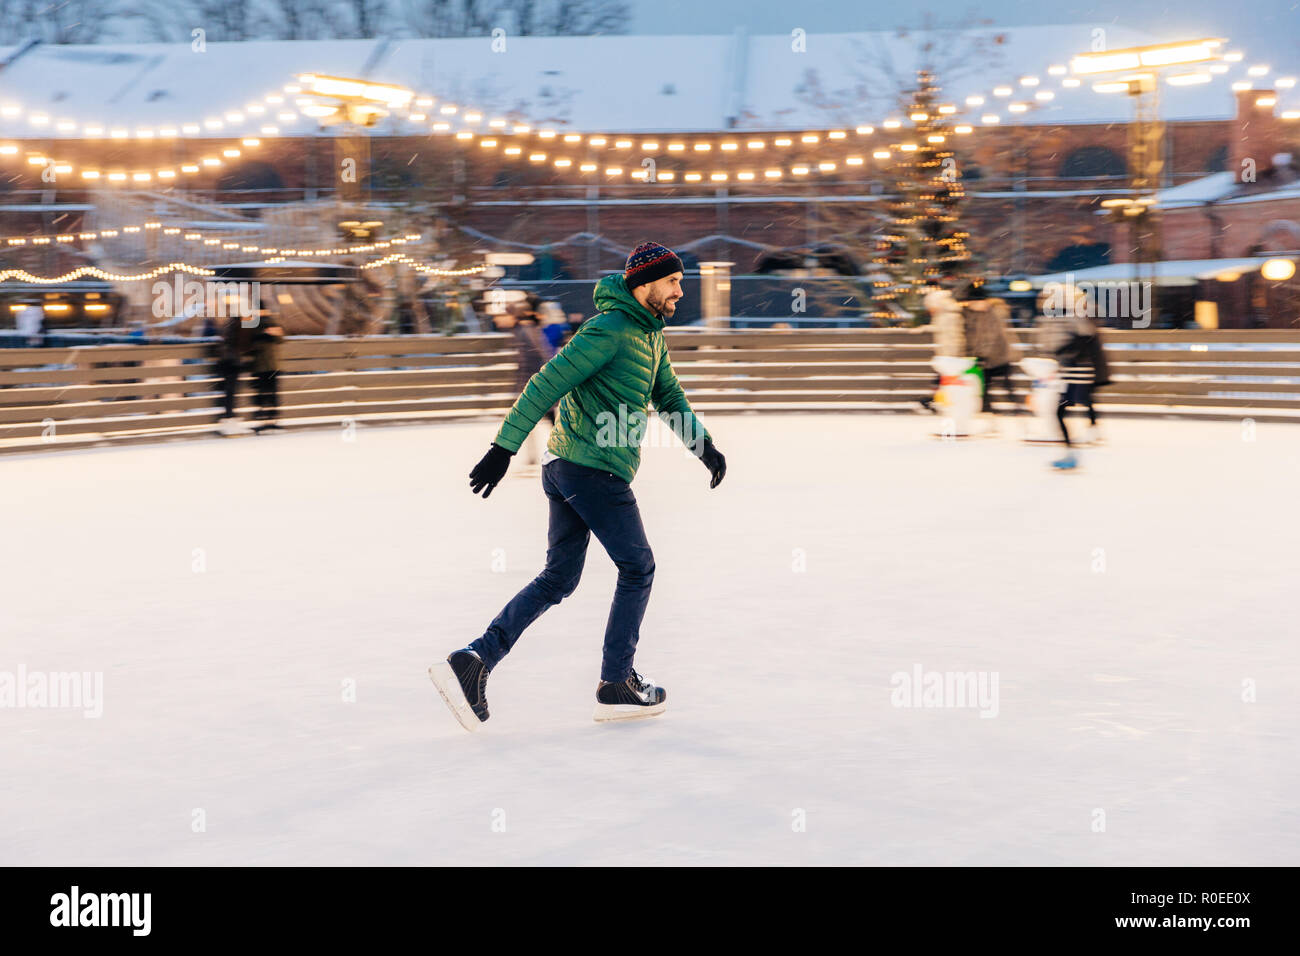 Pleased man in green jacket, wears skates, goes skating on ice, spends winter holidays with use, demonstrates his professionalism, enjoys snowy weathe - Stock Image